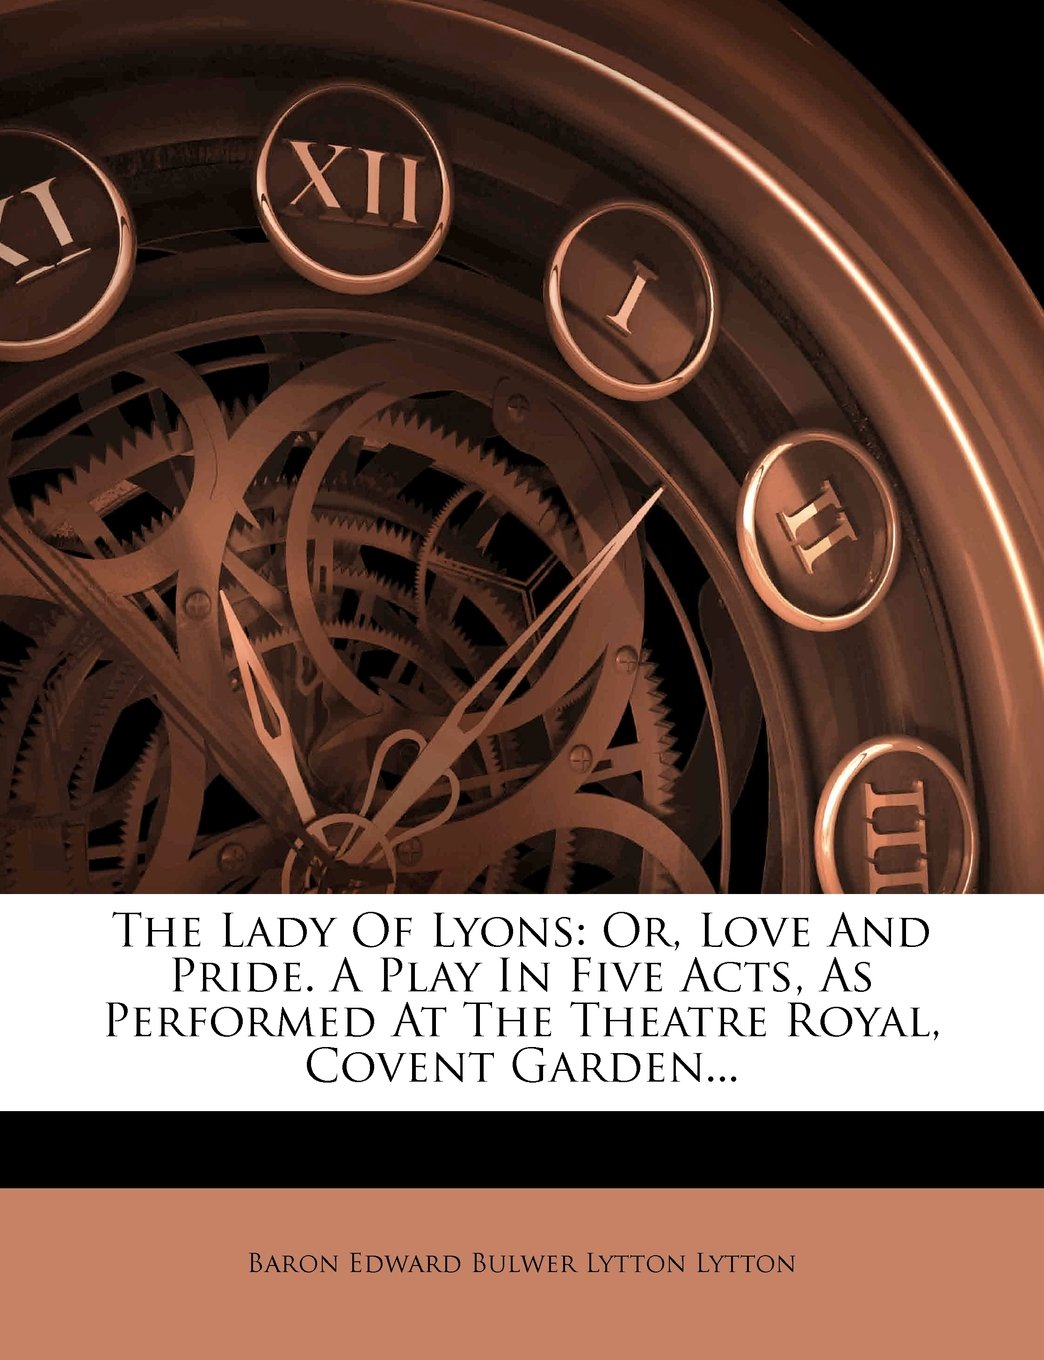 The Lady Of Lyons: Or, Love And Pride. A Play In Five Acts, As Performed At The Theatre Royal, Covent Garden... PDF